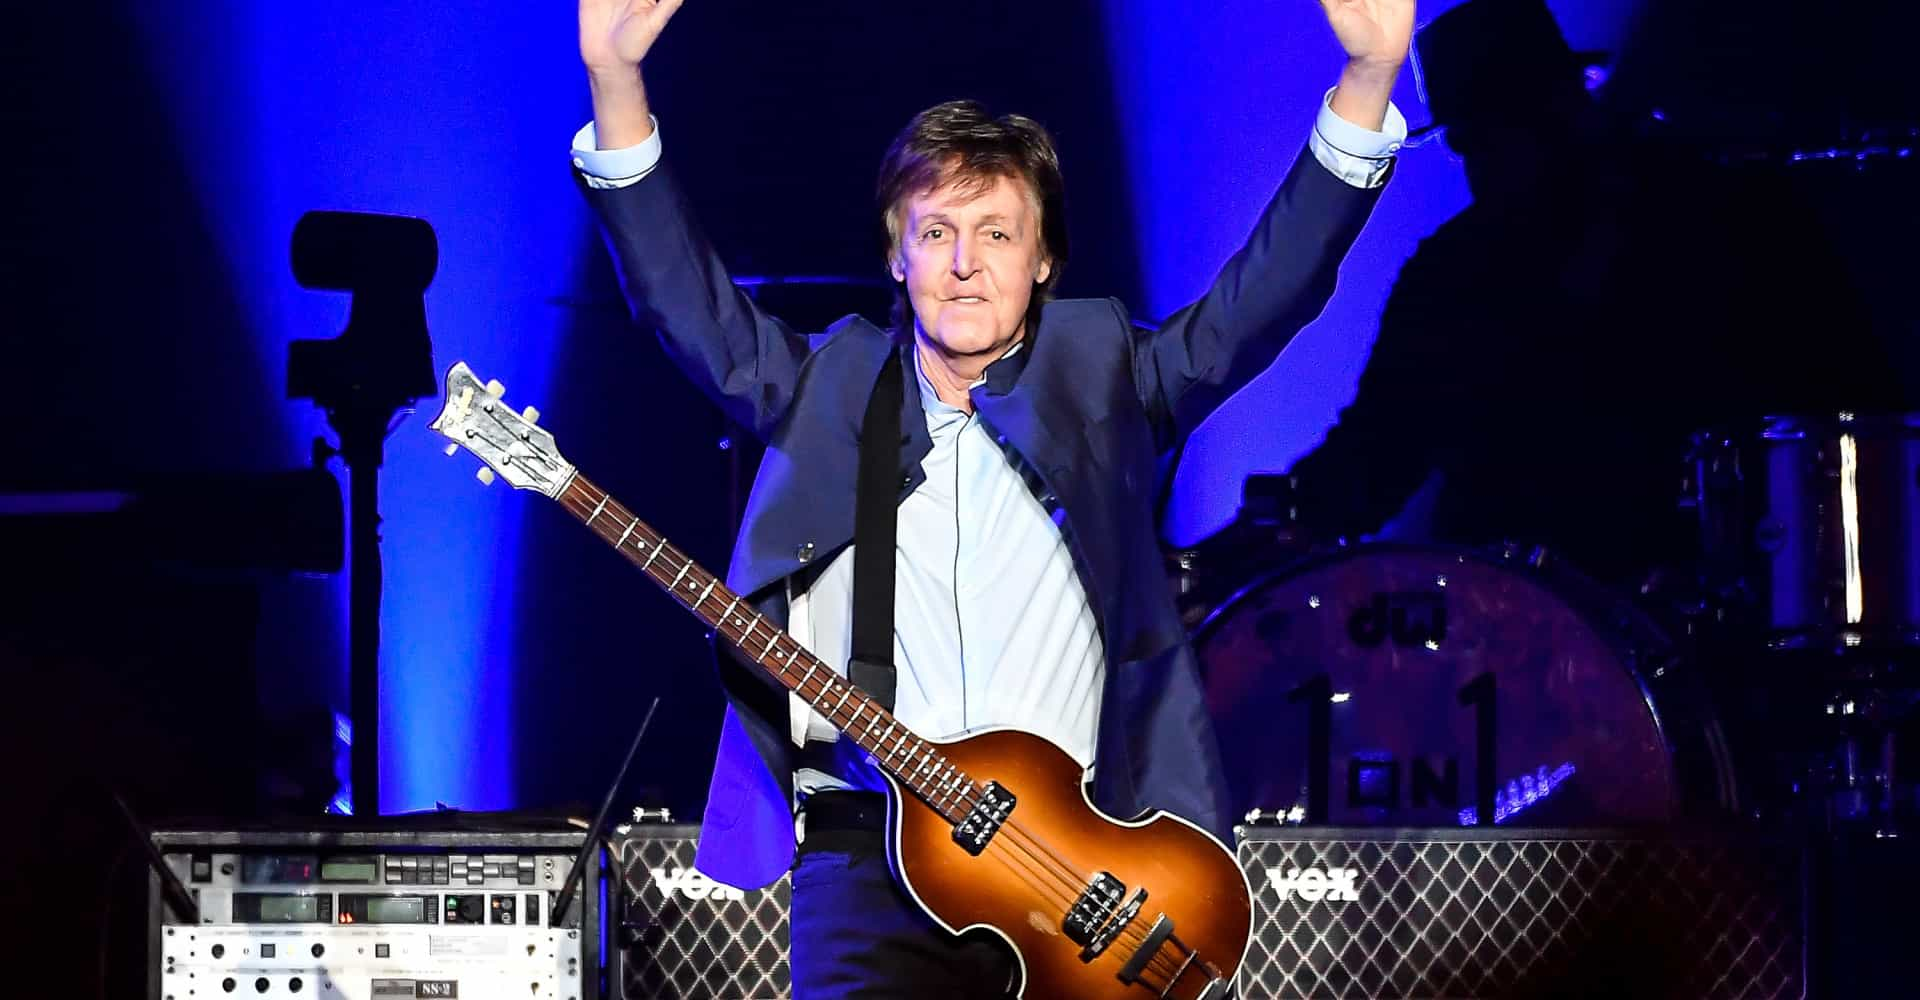 Paul McCartney reveals he saw God while on a psychedelic trip